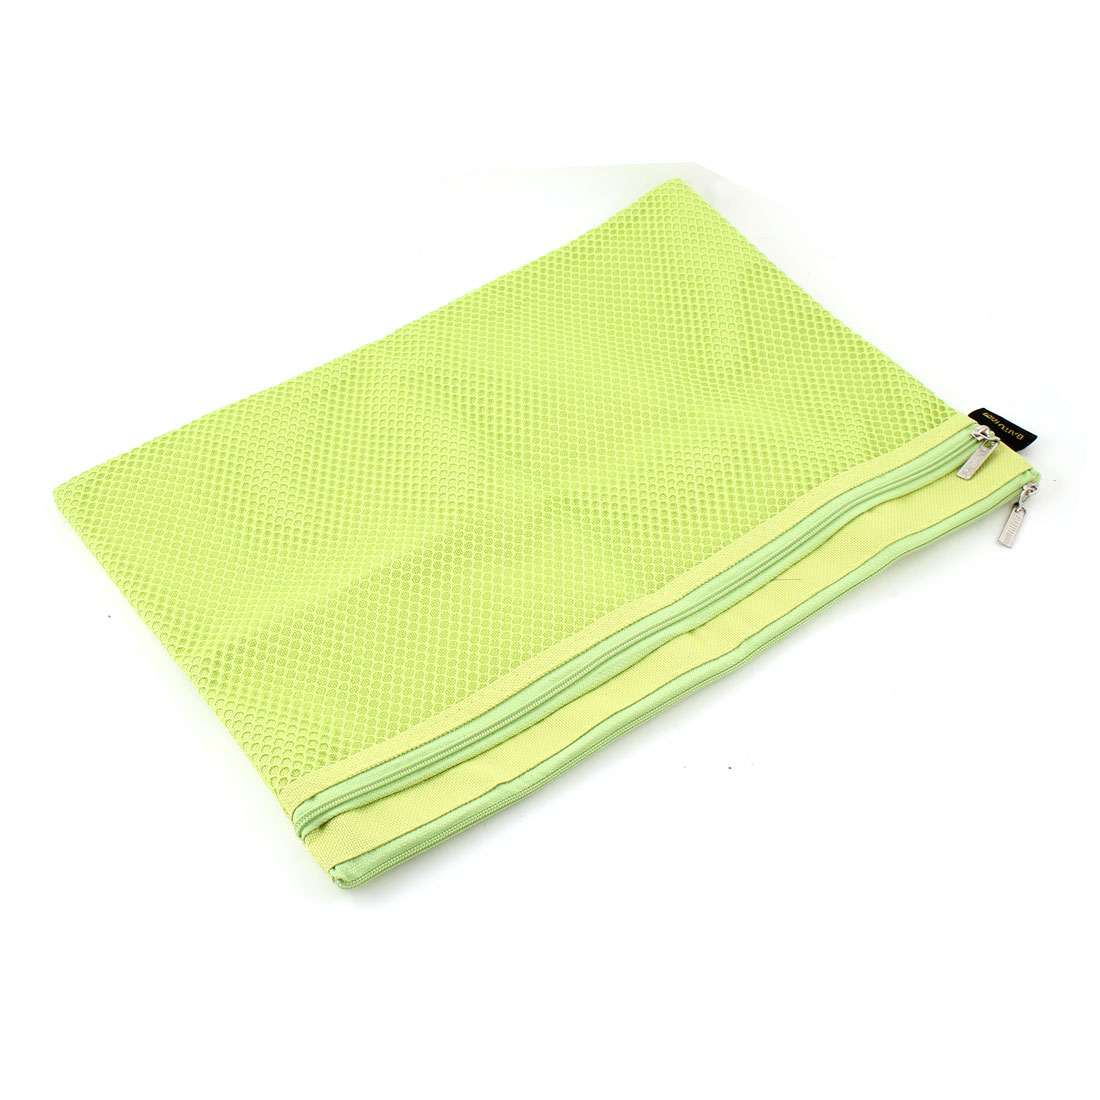 Rectangle Mesh Pattern 2 Layers A4 Paper Files Document Zipper Bag Yellow Green